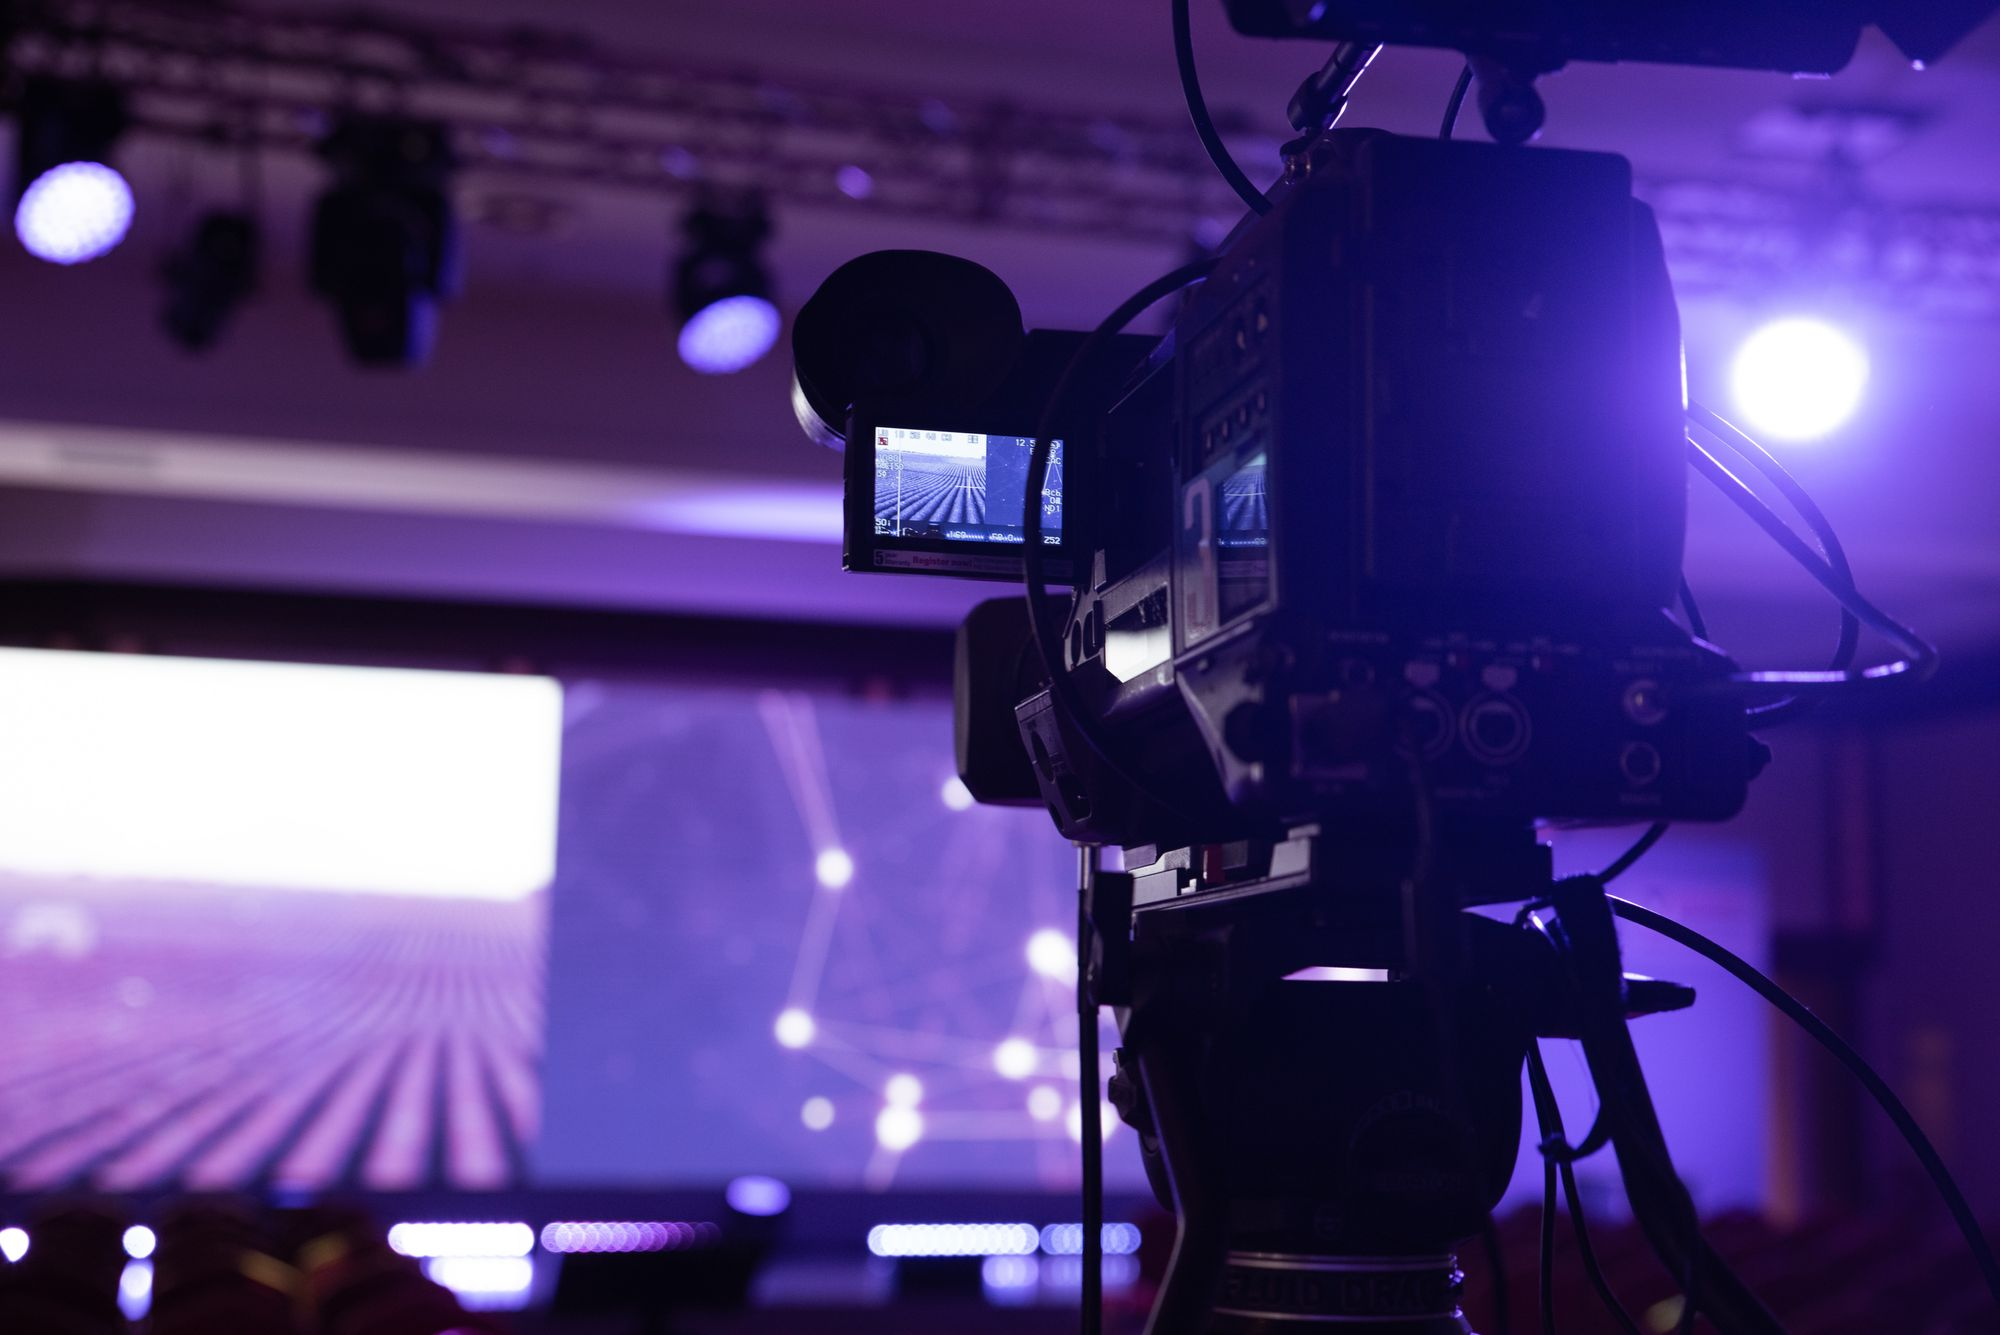 video recording an event